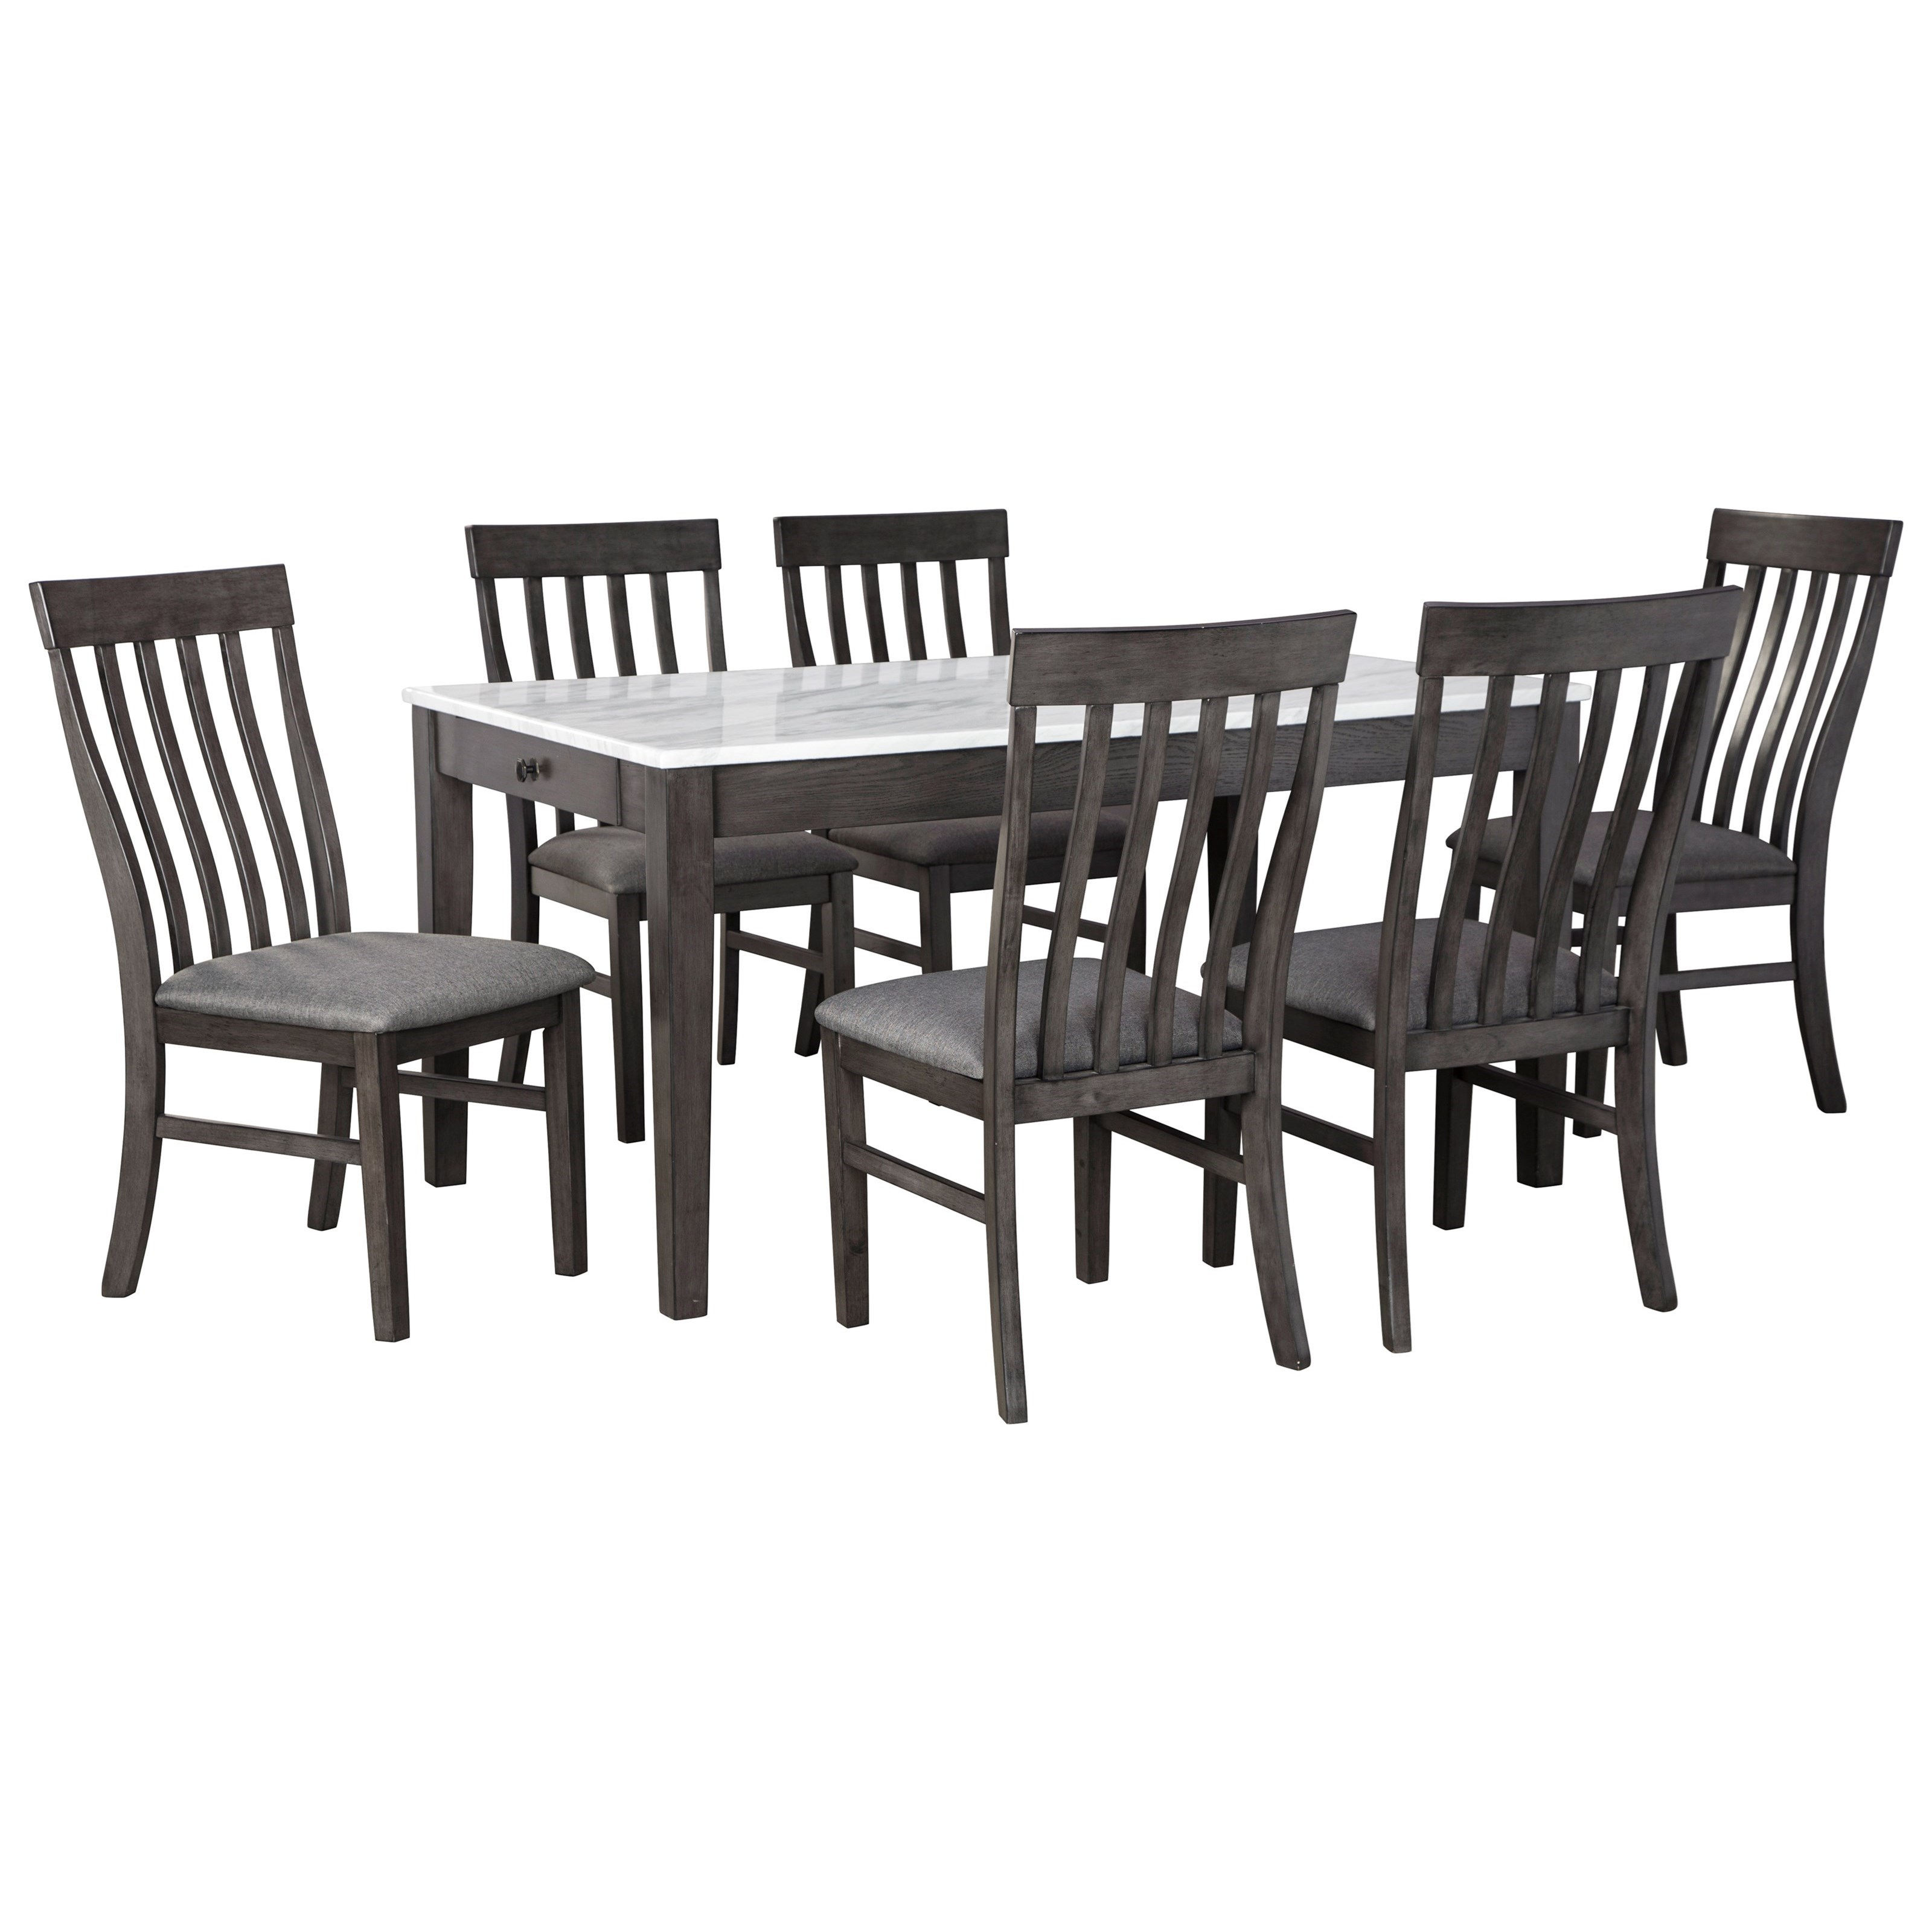 Luvoni 7-Piece Dining Set by Benchcraft at Value City Furniture